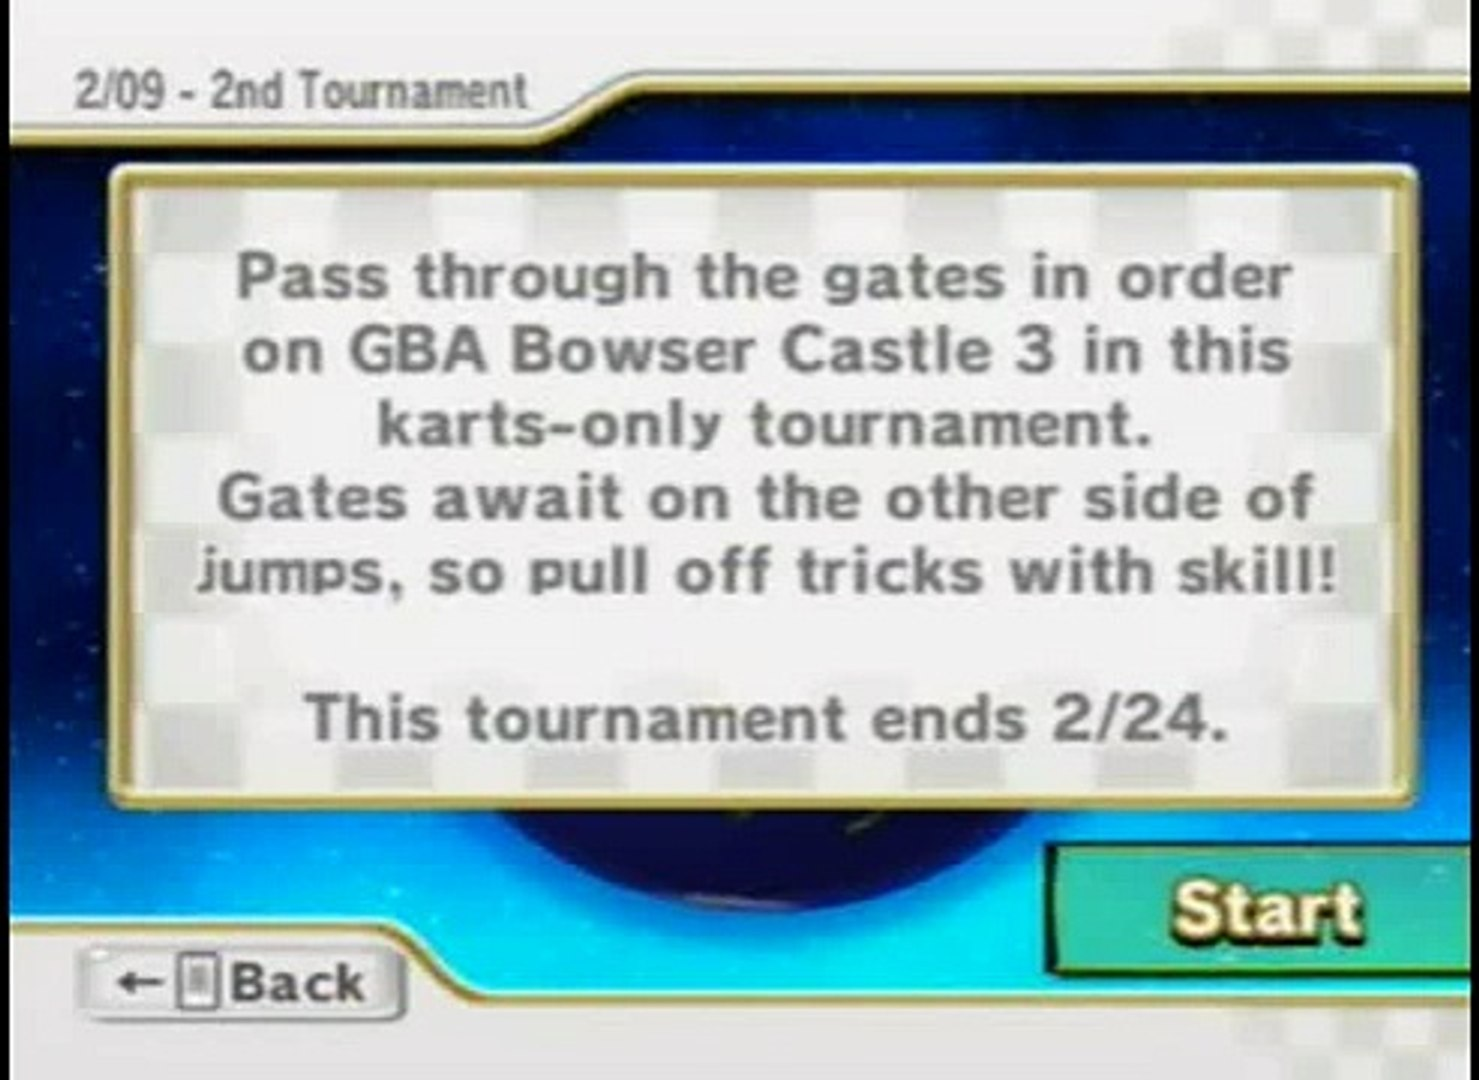 Mario Kart Wii Tournament 2 29 Gba Bowser S Castle 3 Video Dailymotion